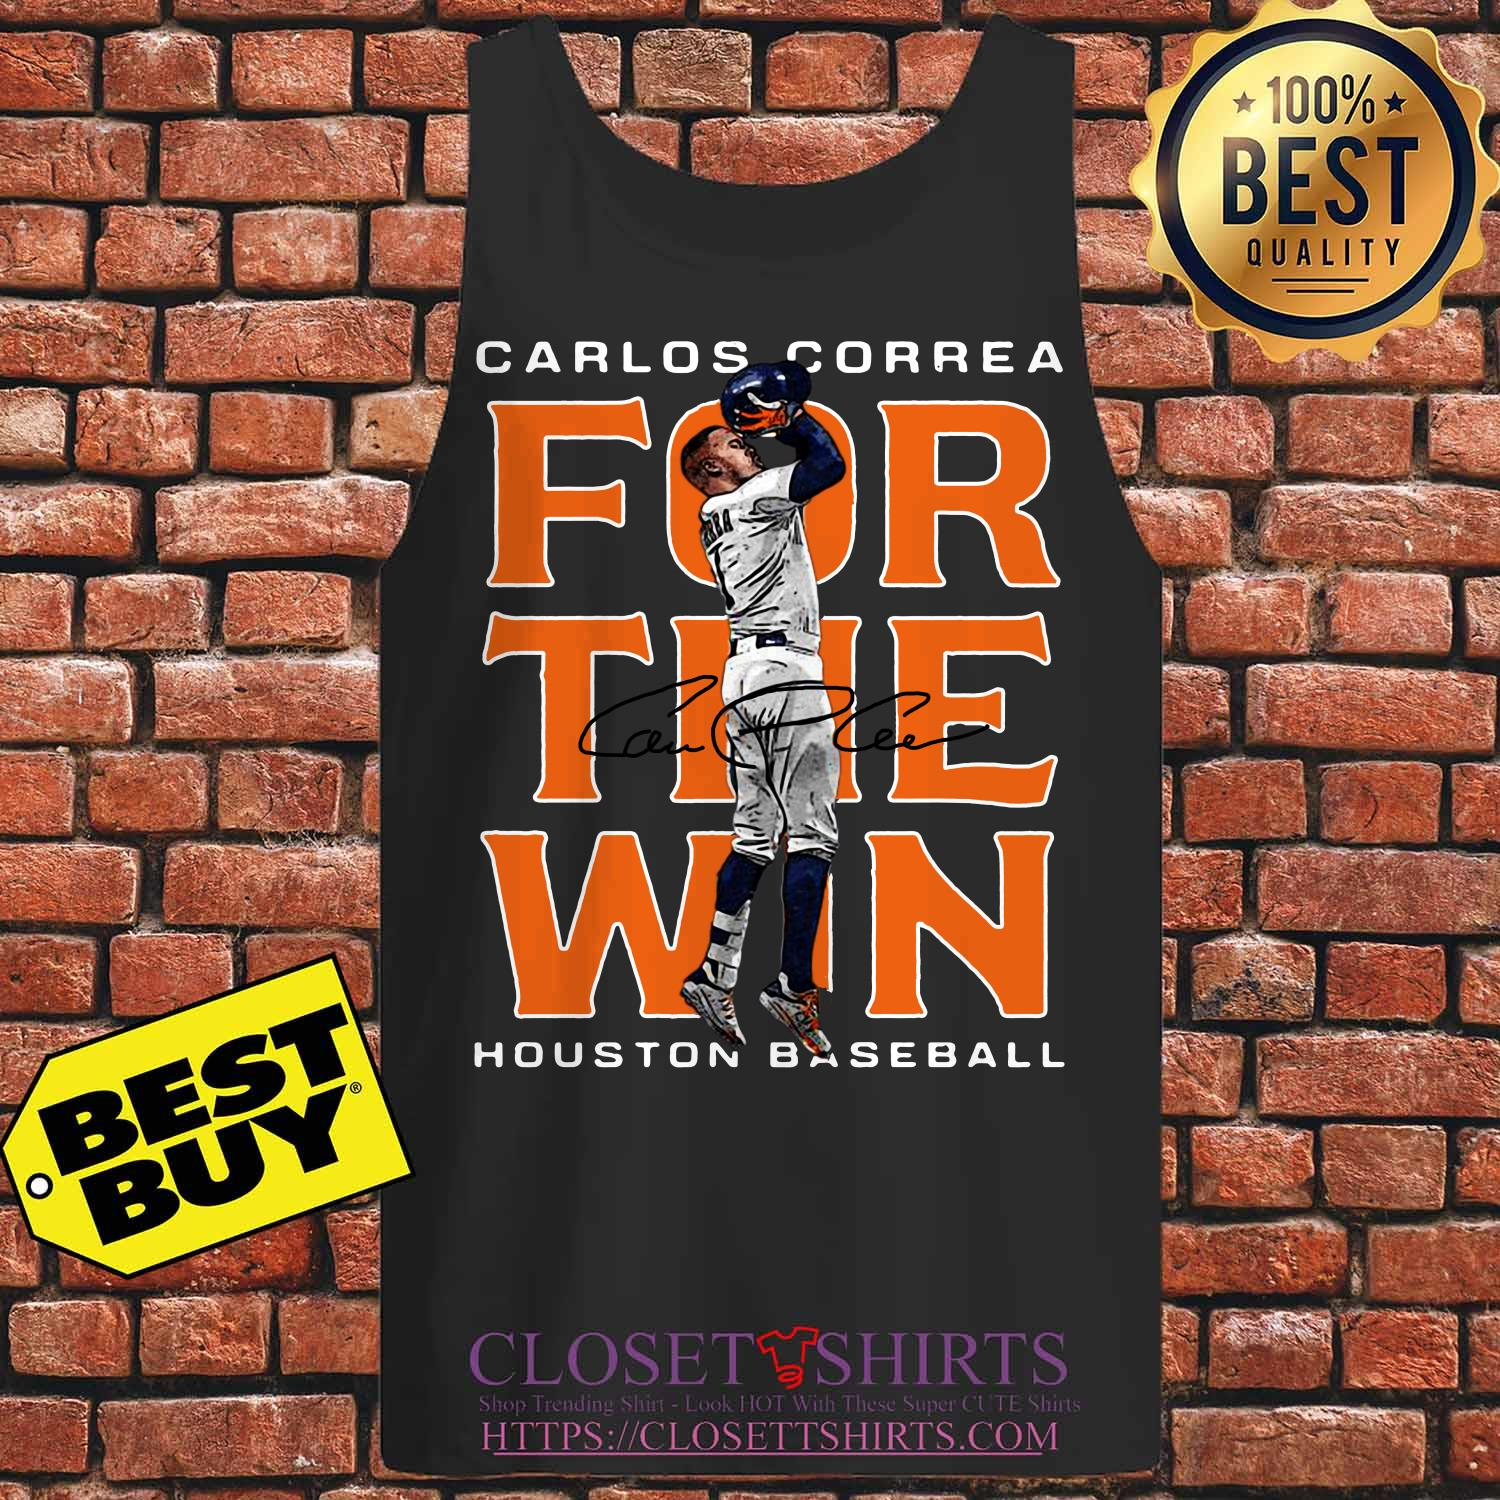 Carlos Correa Houston Astros Baseball Signature tank top